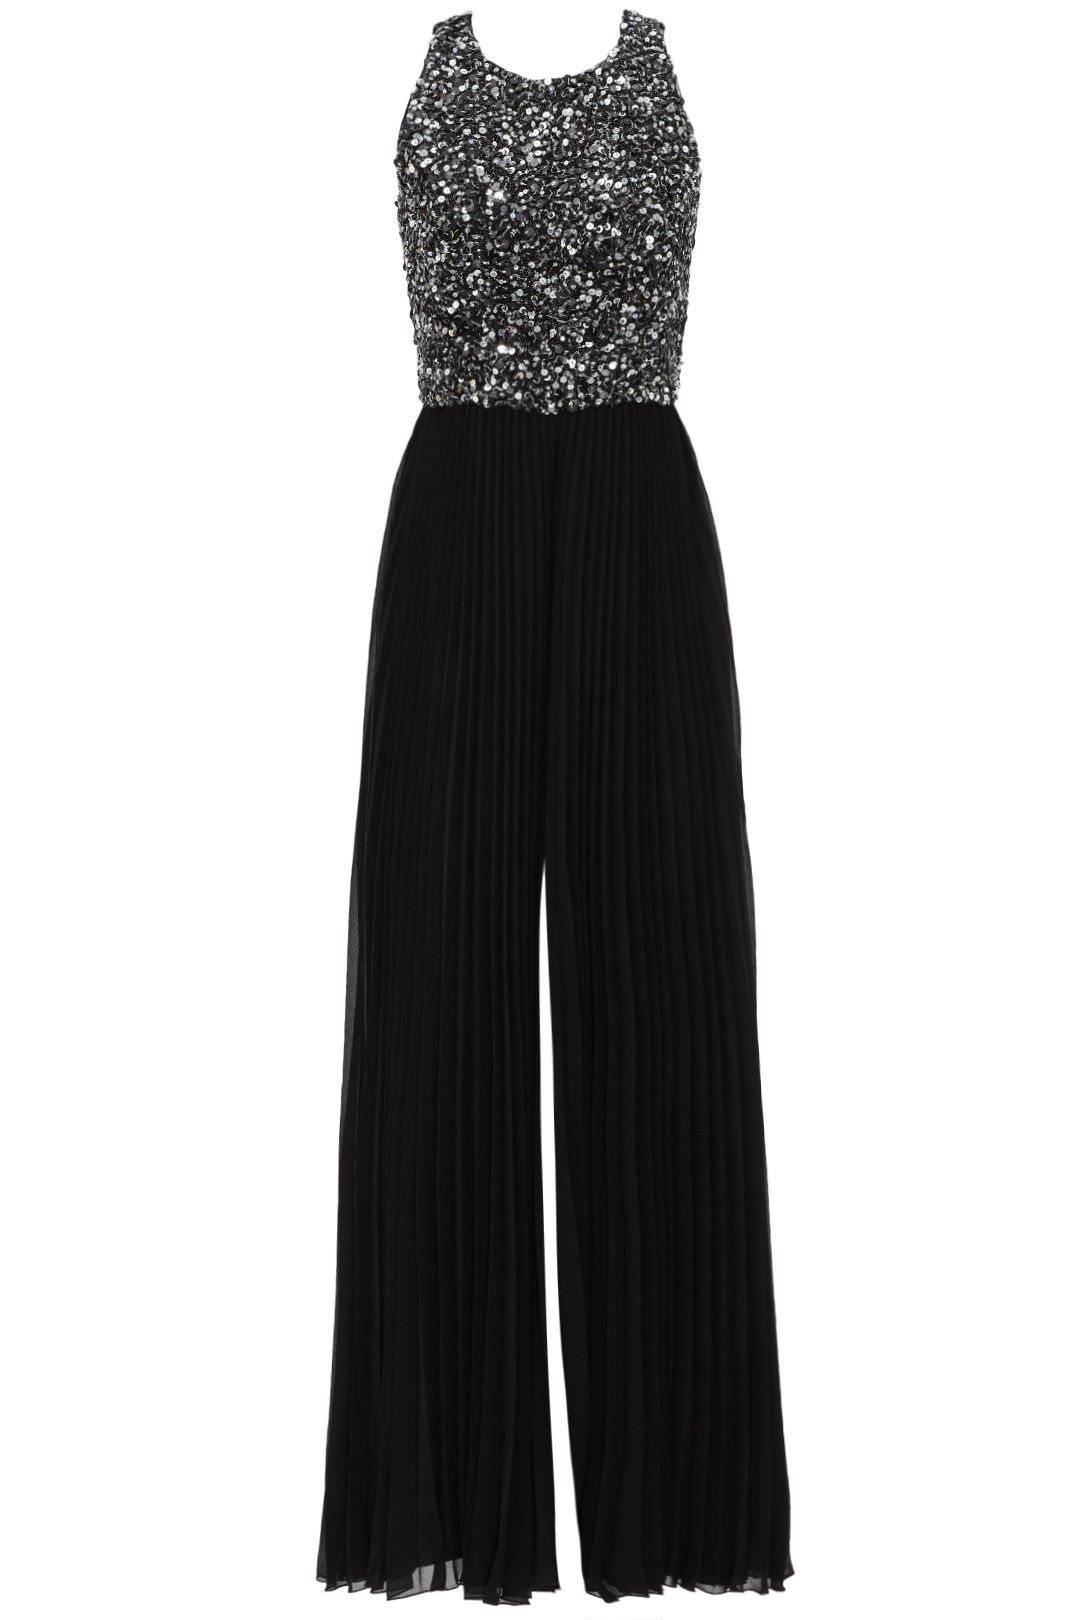 Badgley Mischka Dara Jumpsuit | Closet #1 | Pinterest | Badgley ...